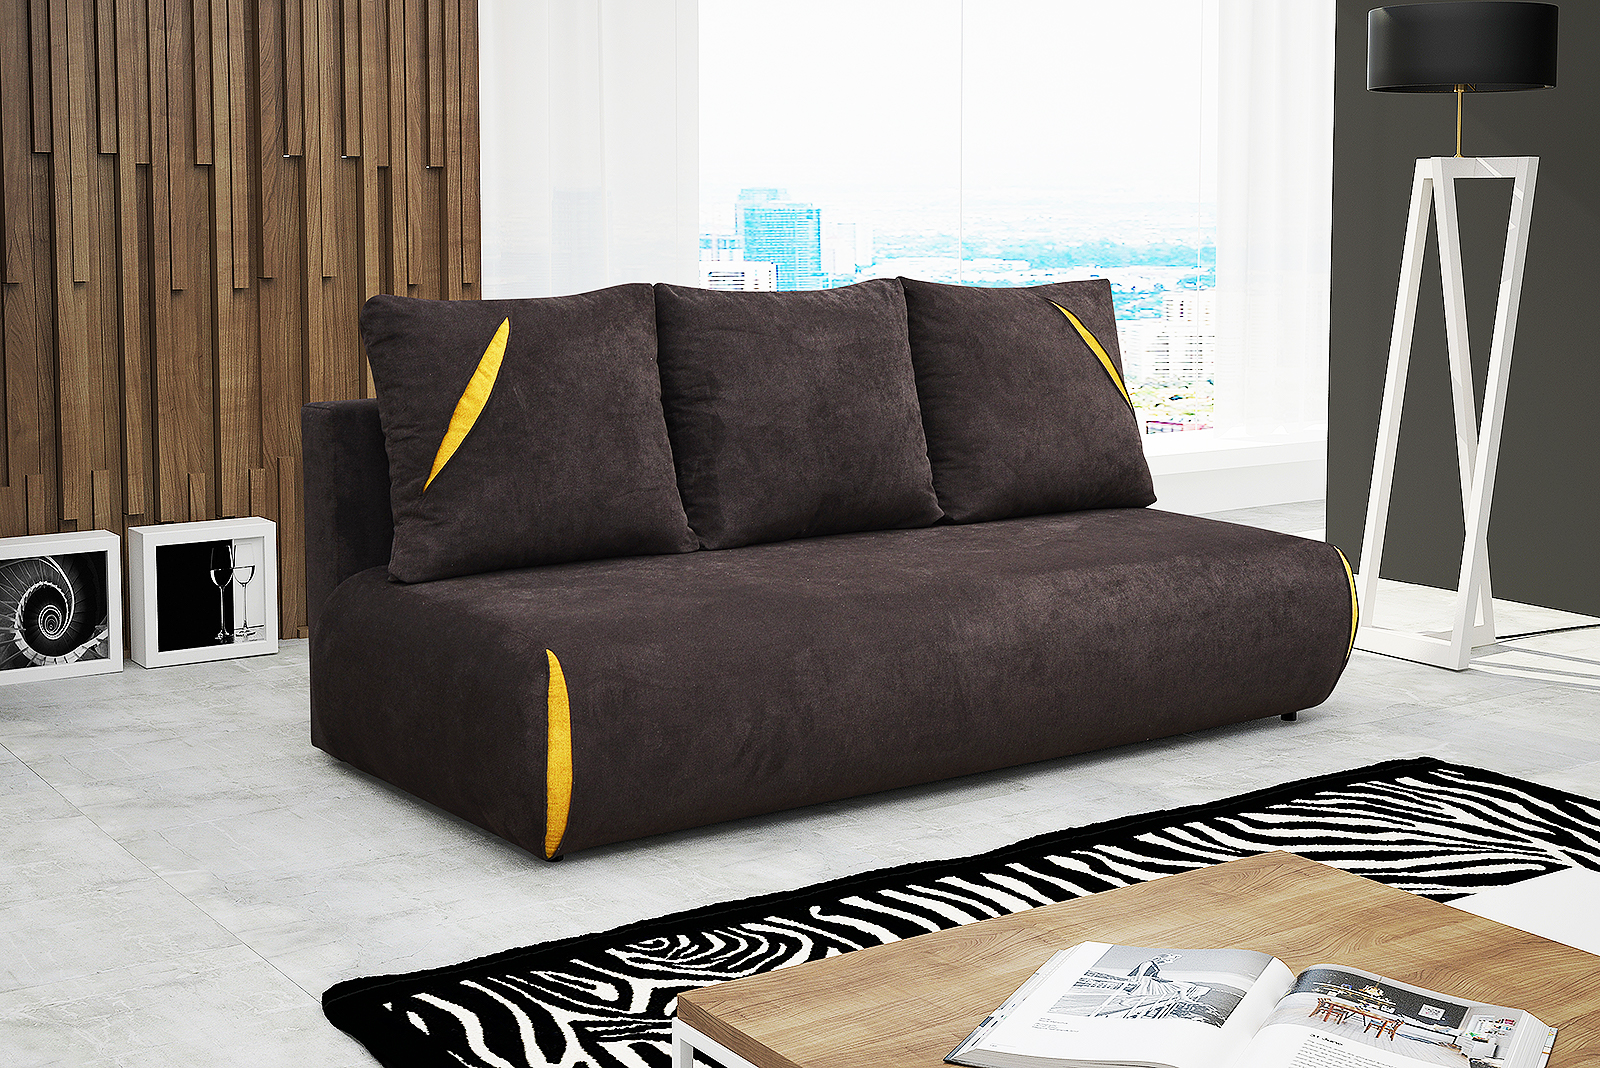 cuba futon sofa bed review donate to charity uk brown special offer dako furniture